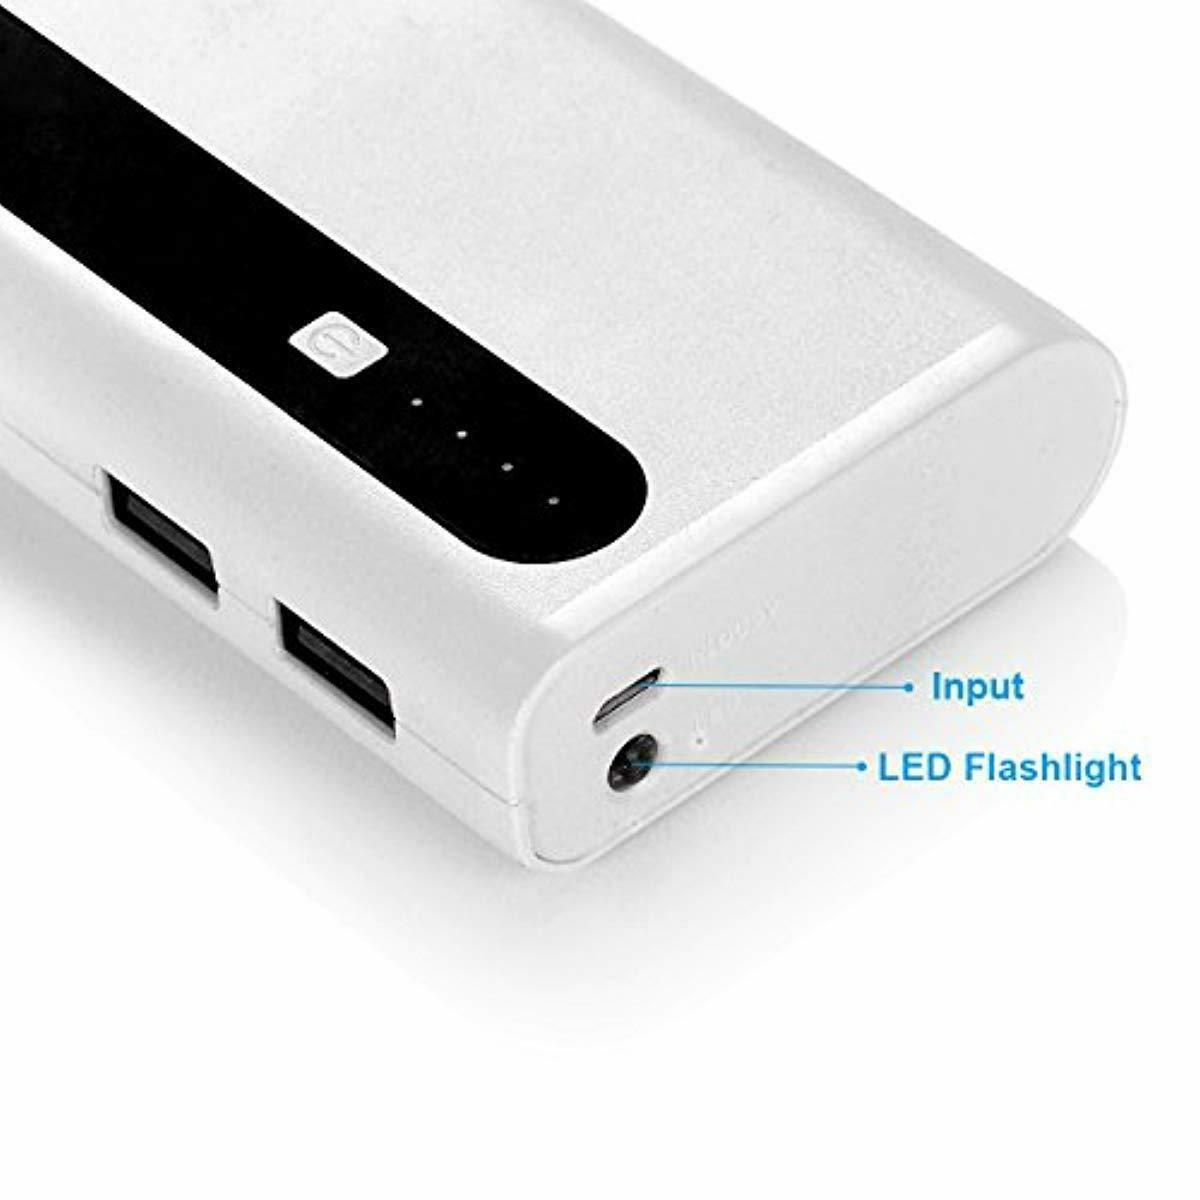 Aibocn Power Bank 10,000mAh Battery Charger with Flashlight for Iphone Samsung